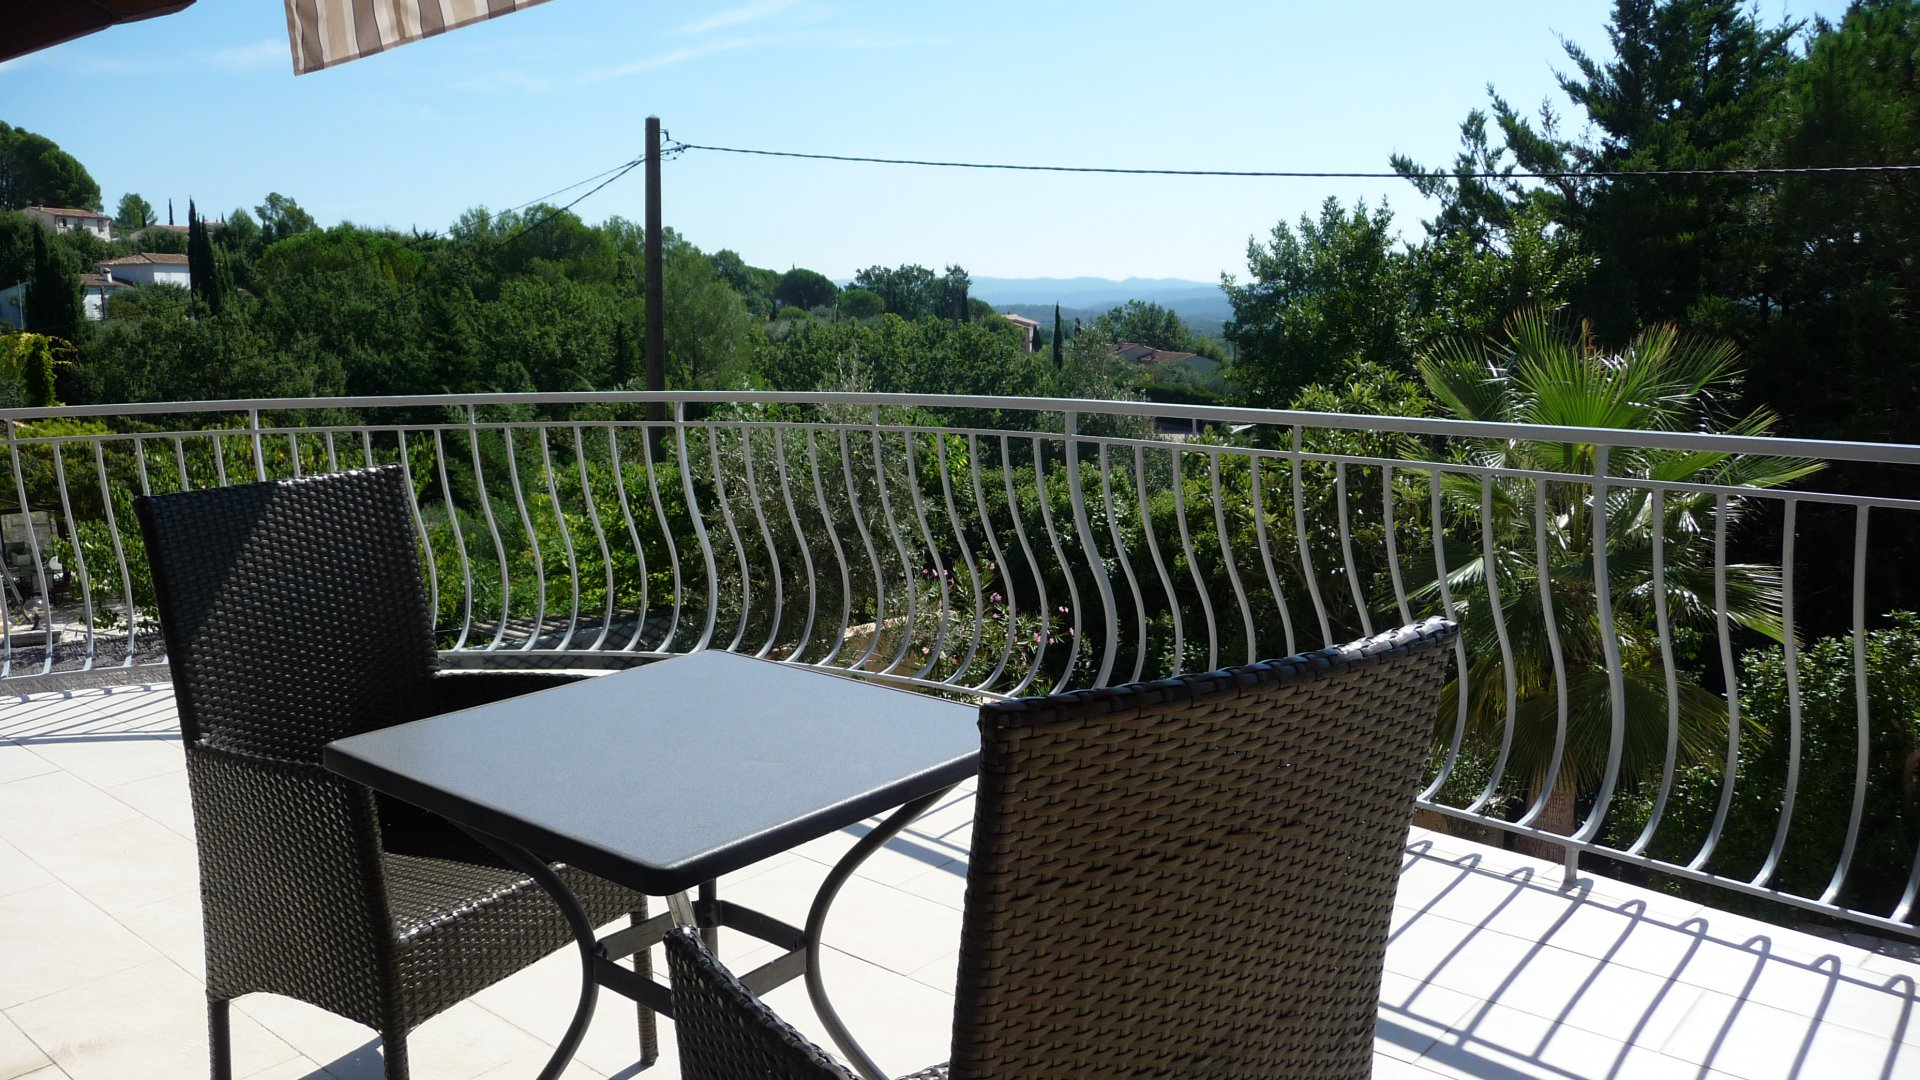 Fayence villa with 2 appartments, pool and panoramic view